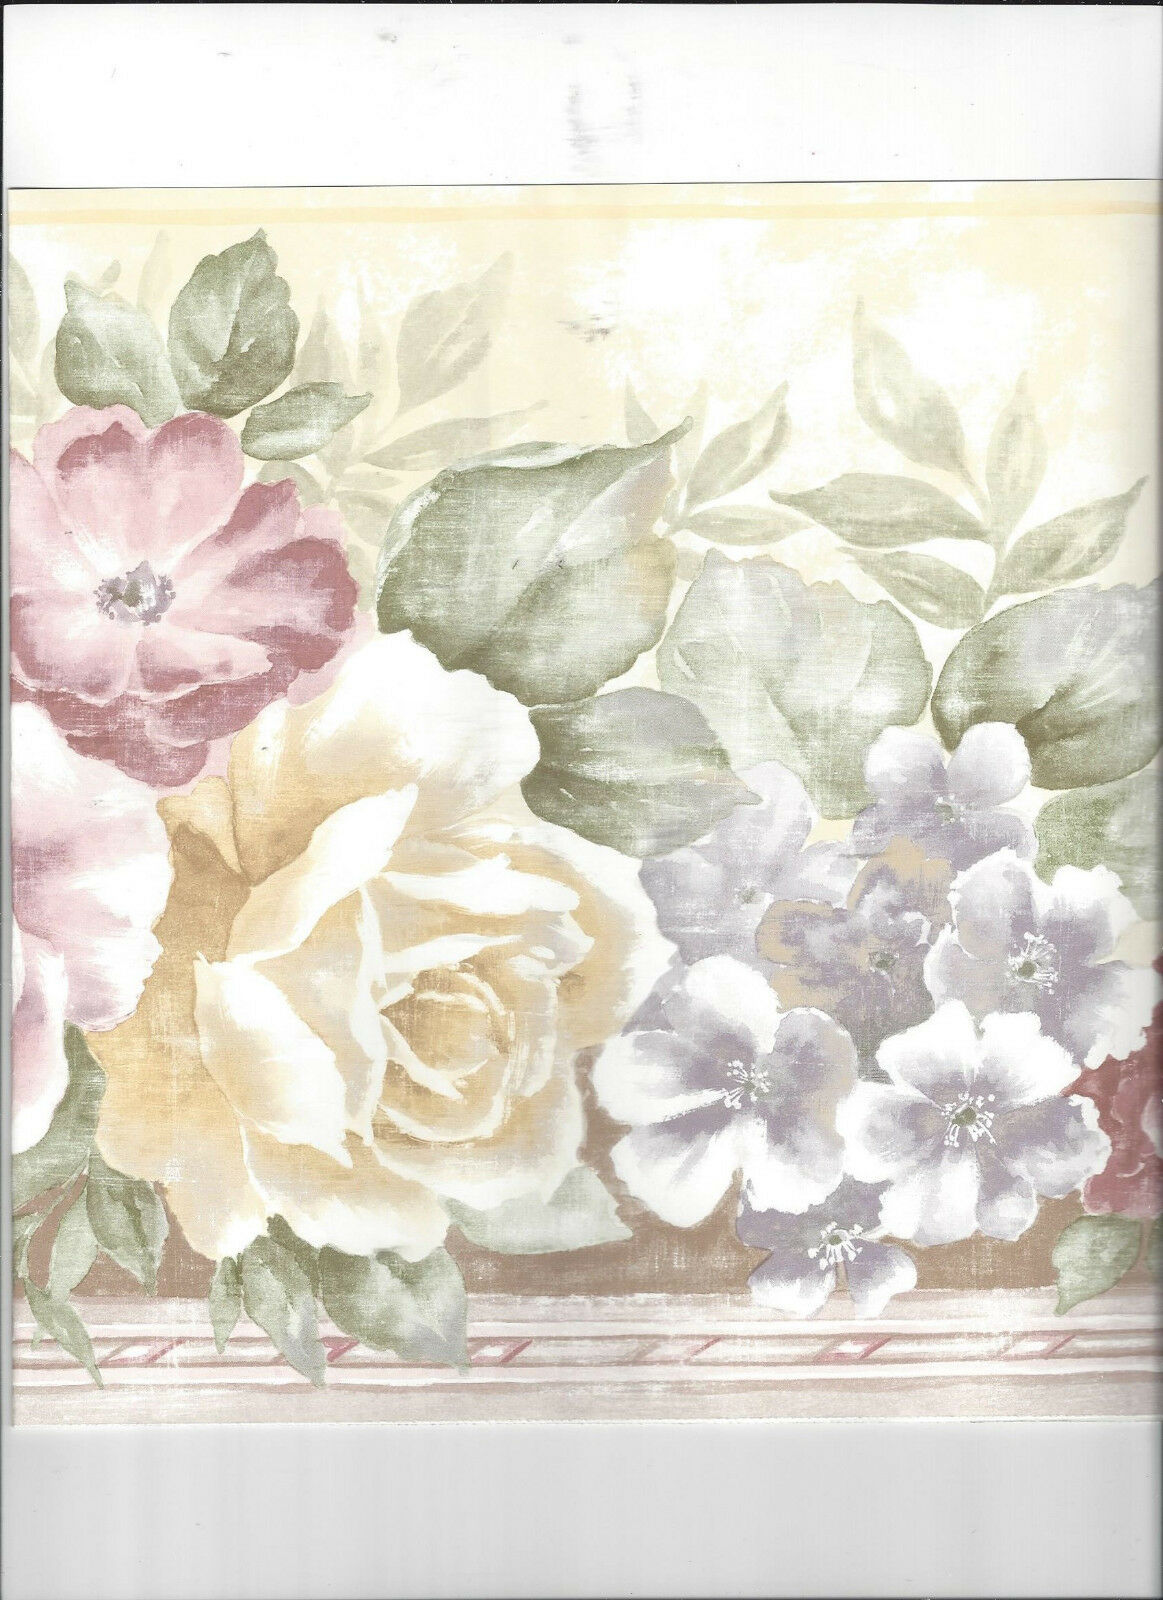 Wallpaper Border Floral Flower Rose Roses New Arrival Classic For